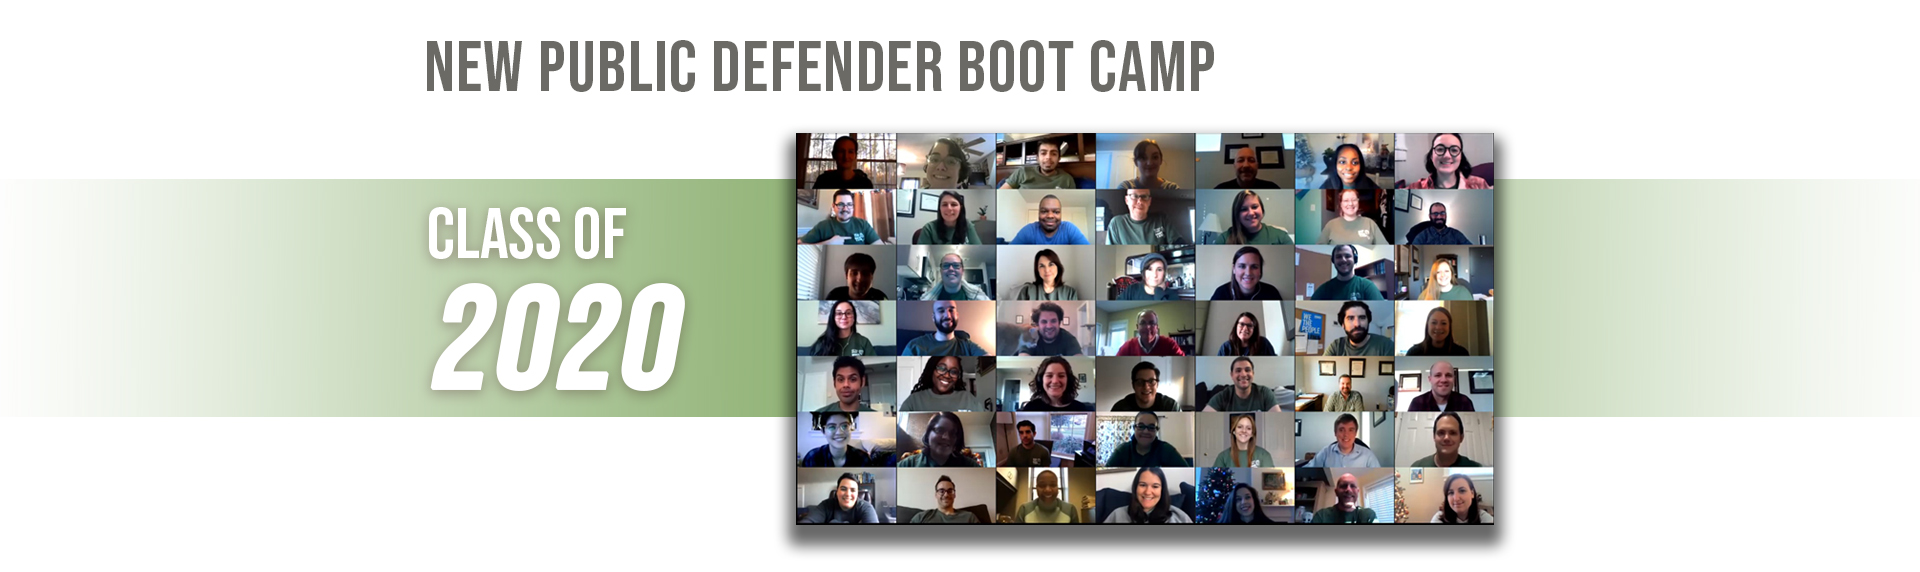 New Public Defender Boot Camp Class of 2020 photo